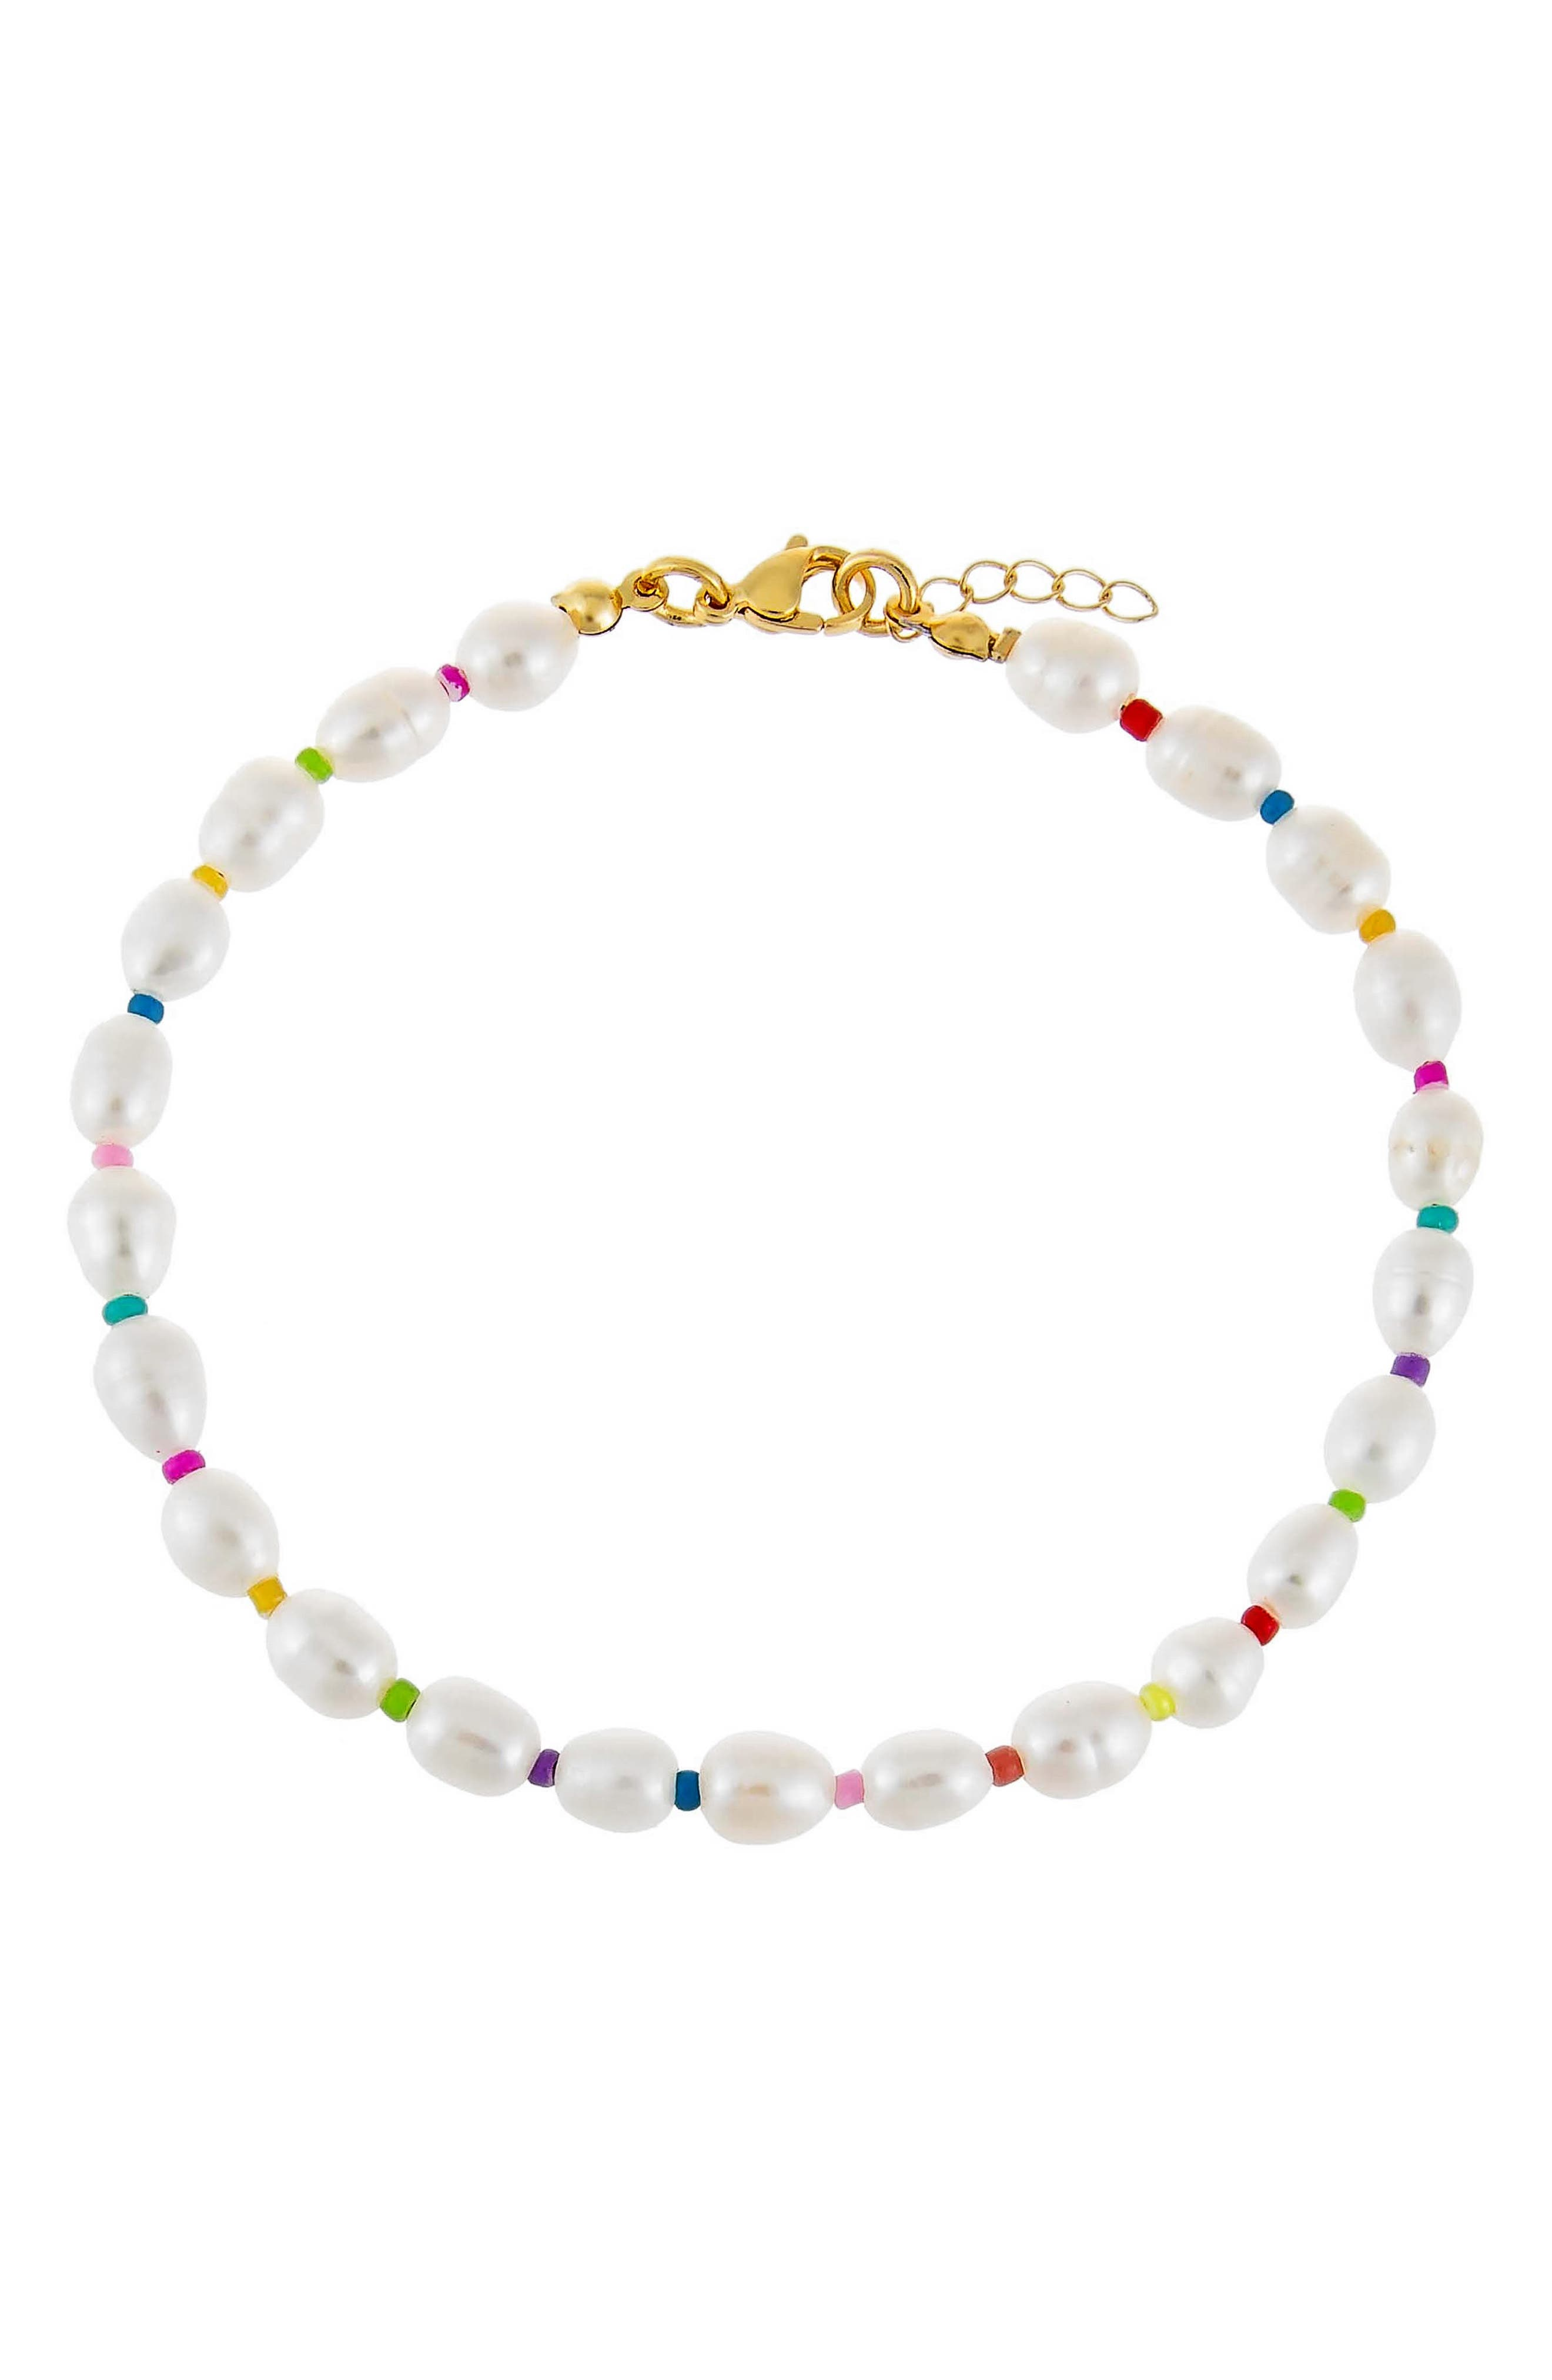 Women's Adina's Jewels Multicolor Freshwater Pearl Anklet